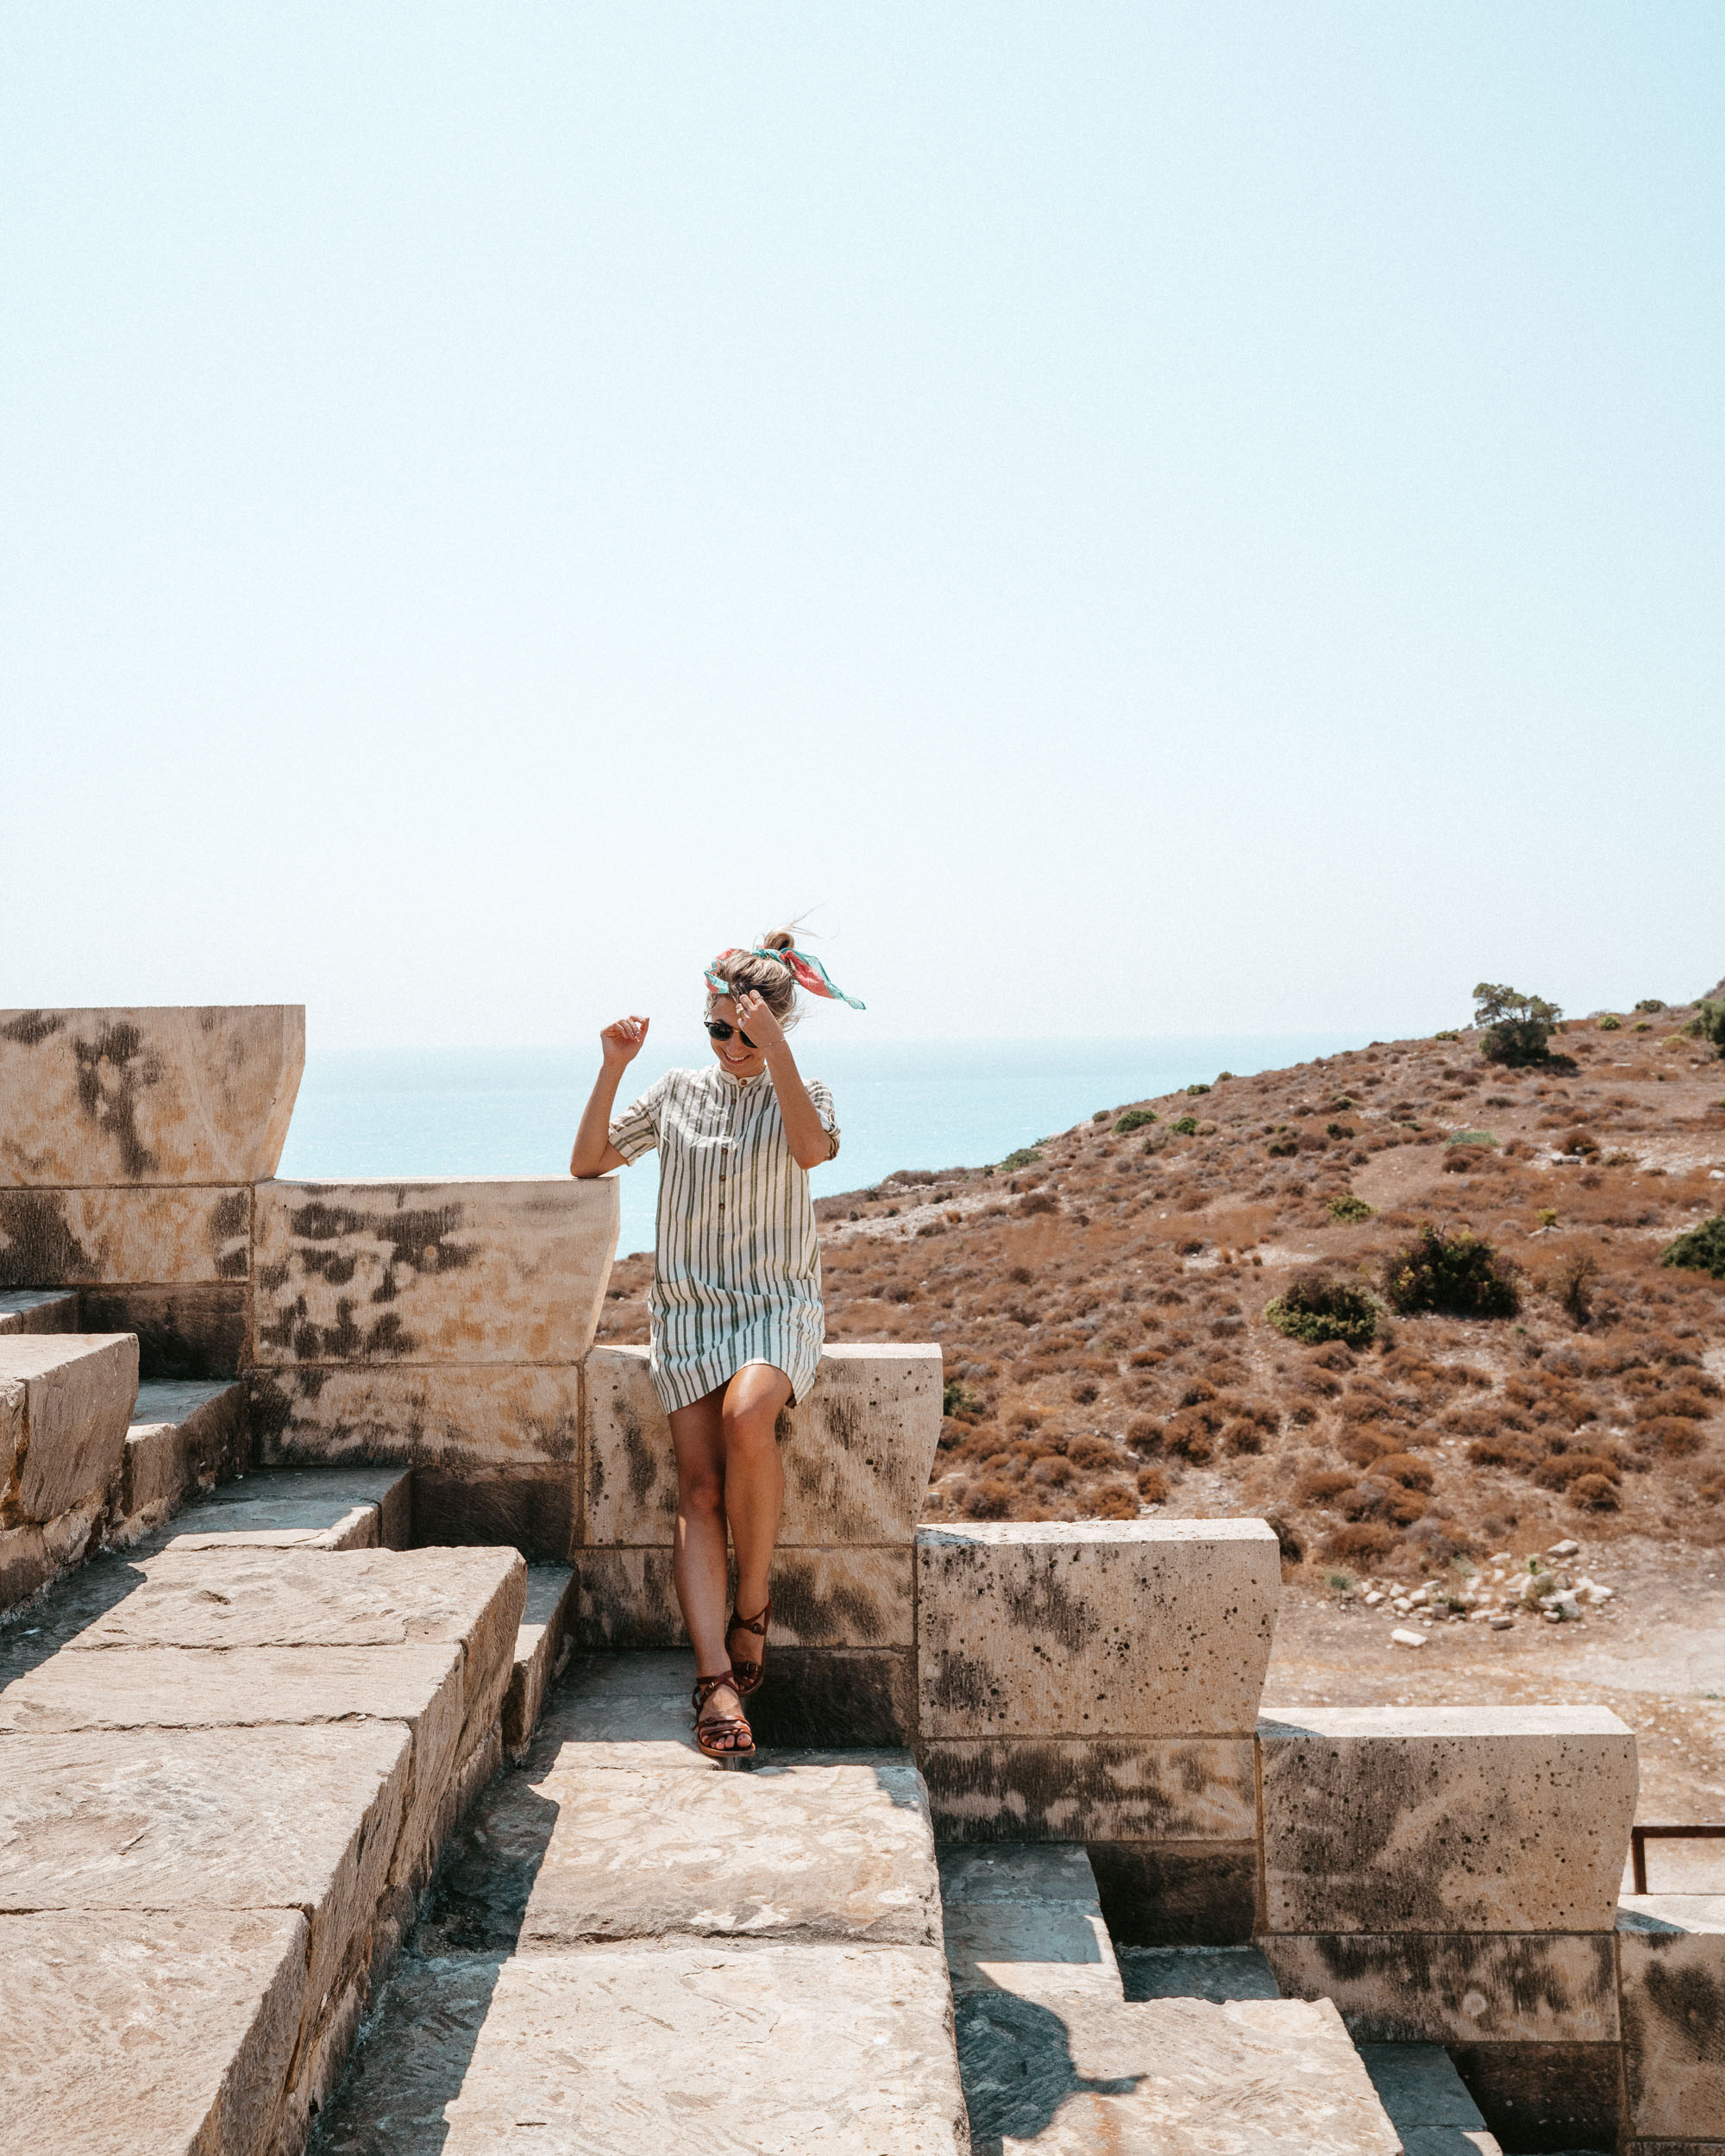 Paphos mosaics and views of Cyprus via @finduslost